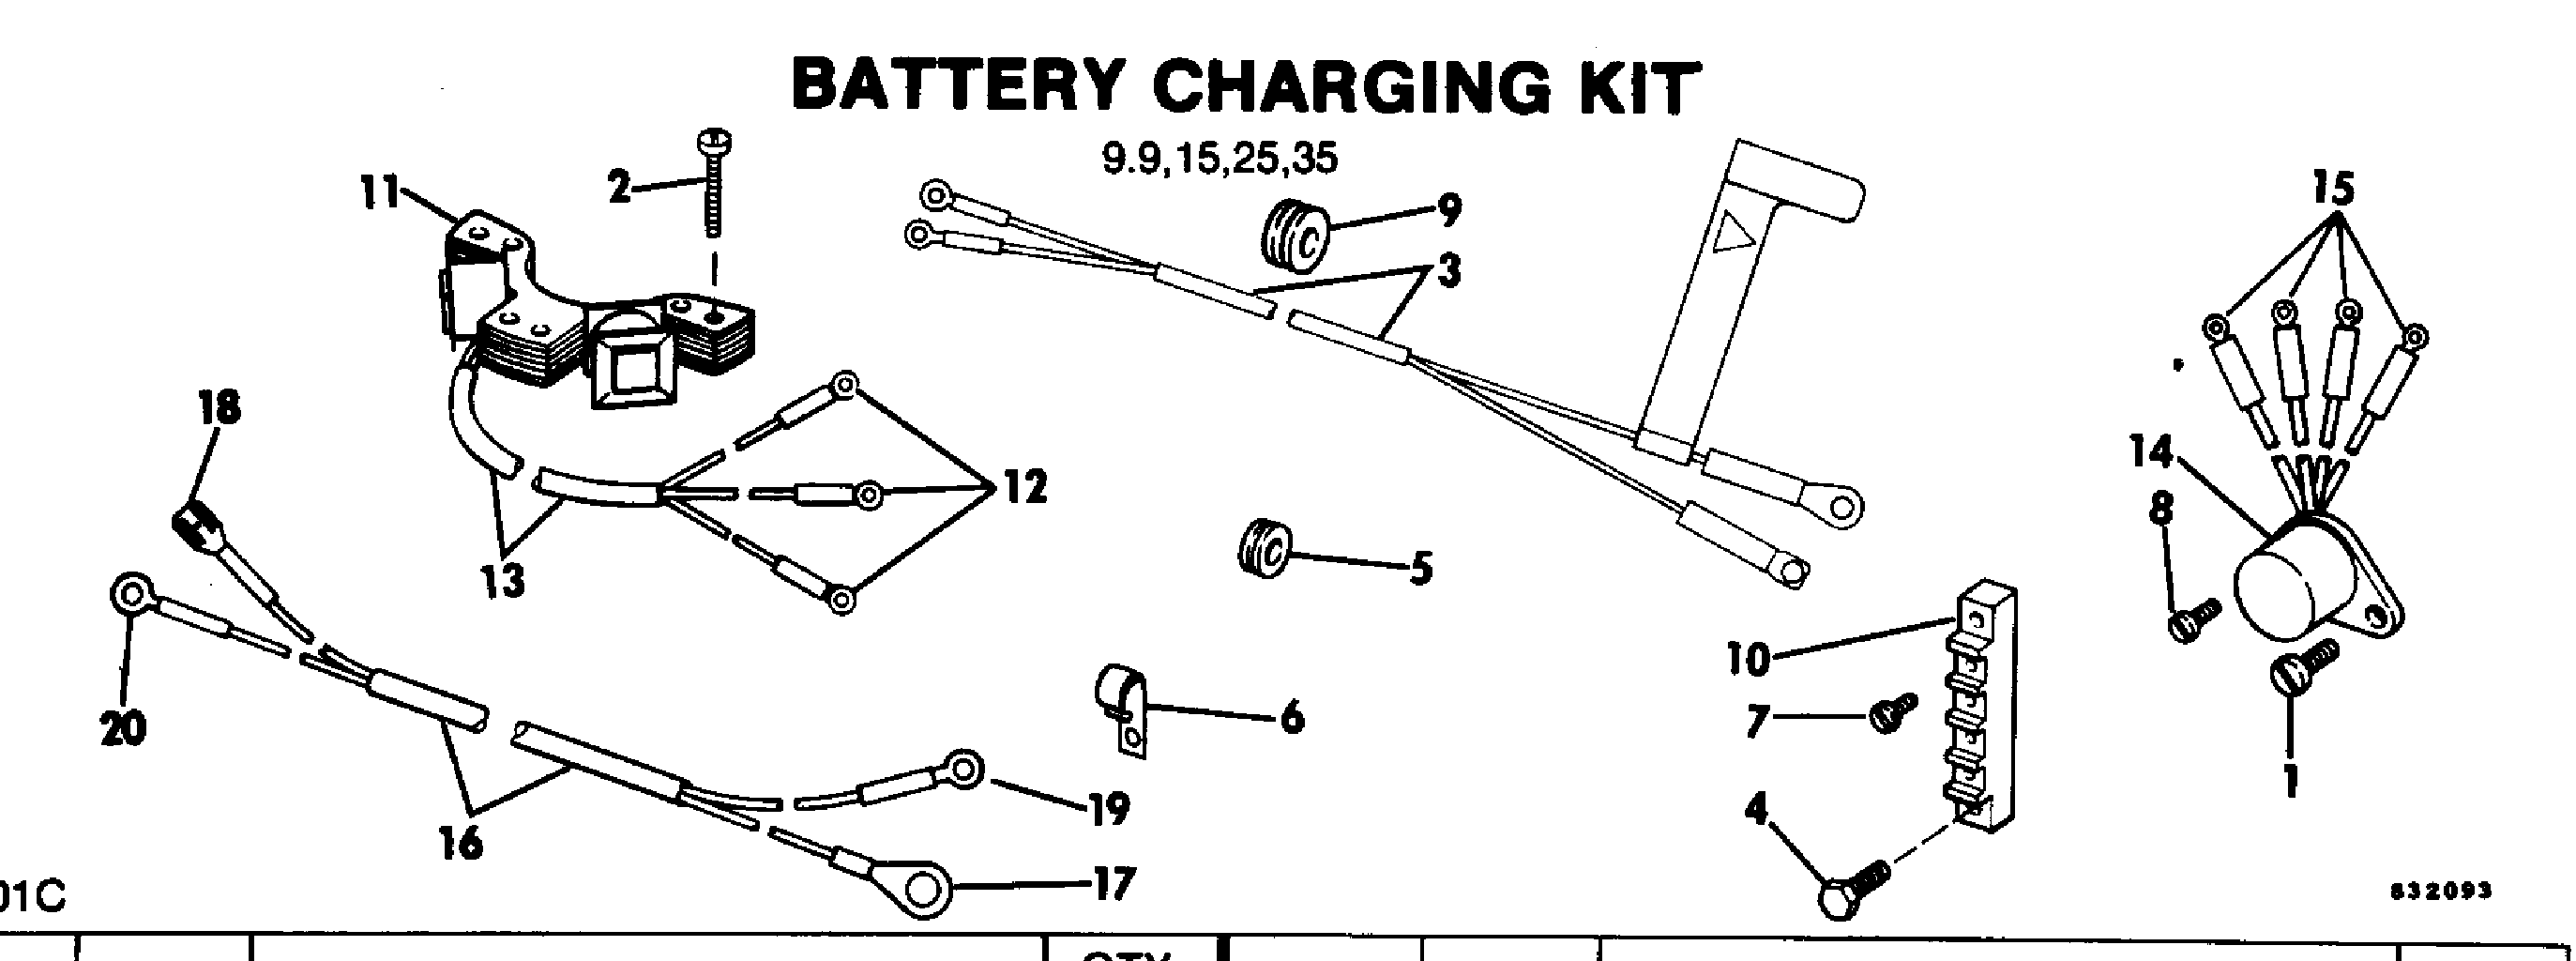 Battery Charging Kit 9 9 15 25 35 Electrical Accessories For Johnson Evinrude Outboards